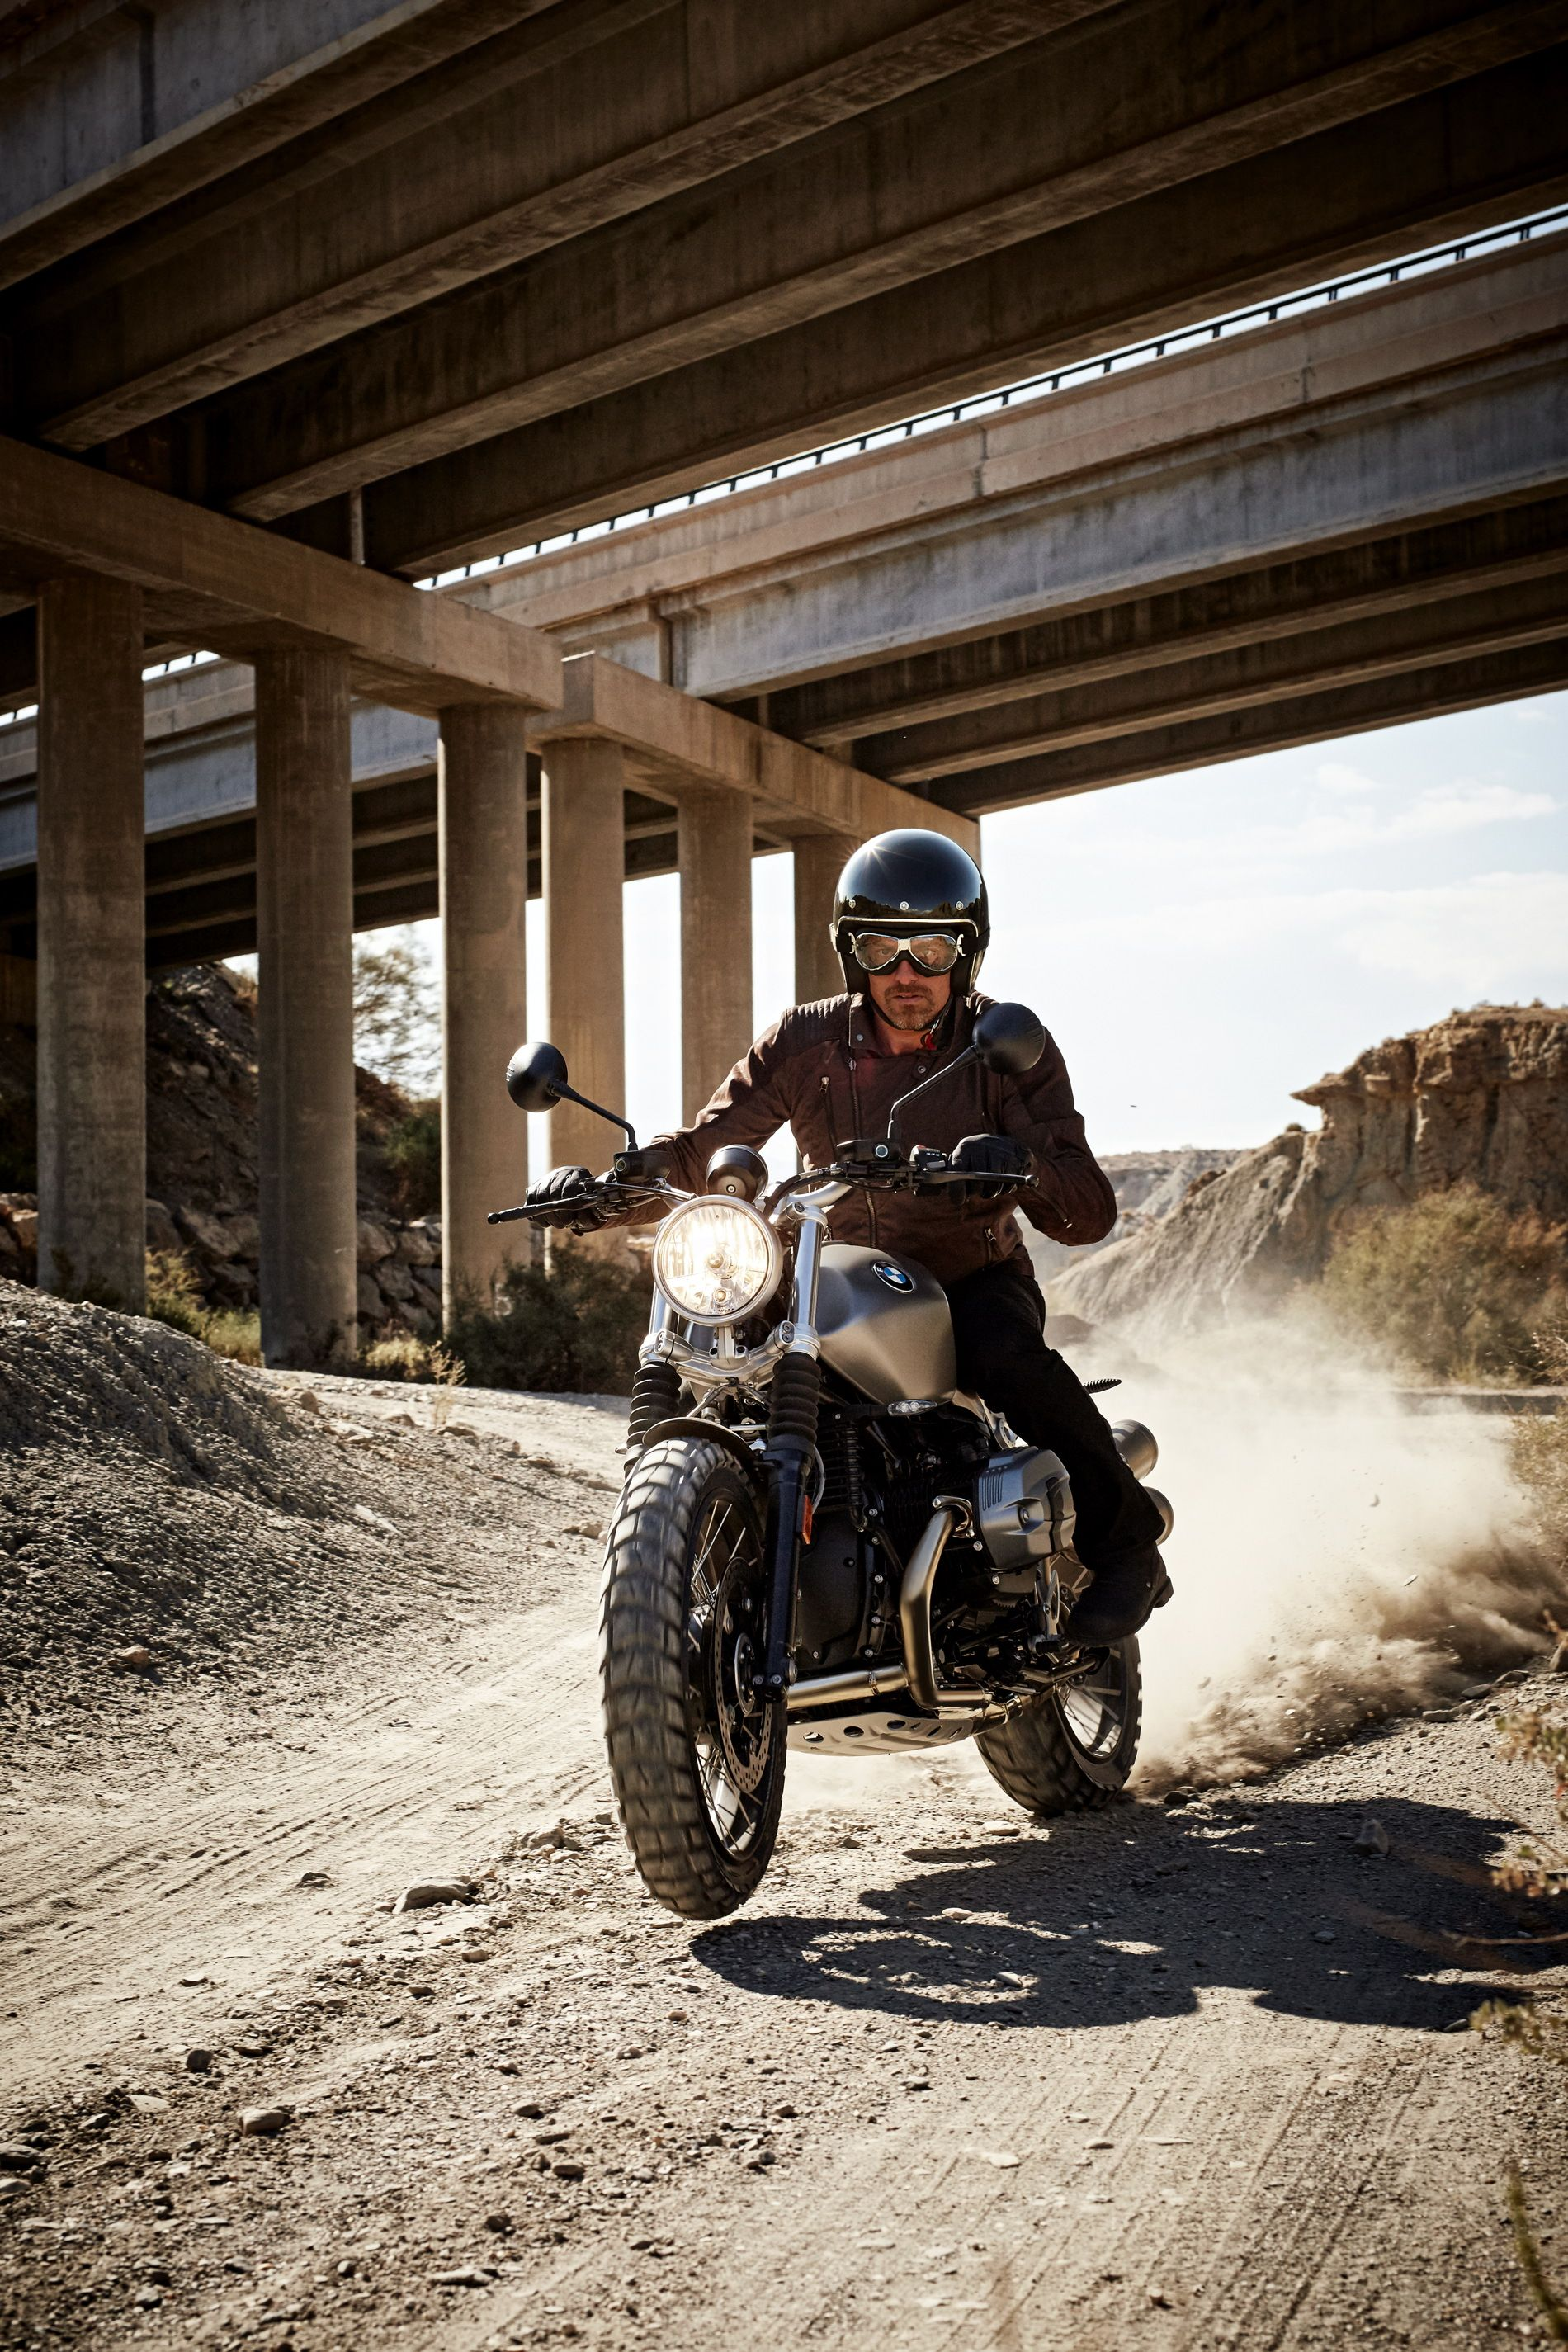 BMW Announces Pricing for New R nineT Scrambler